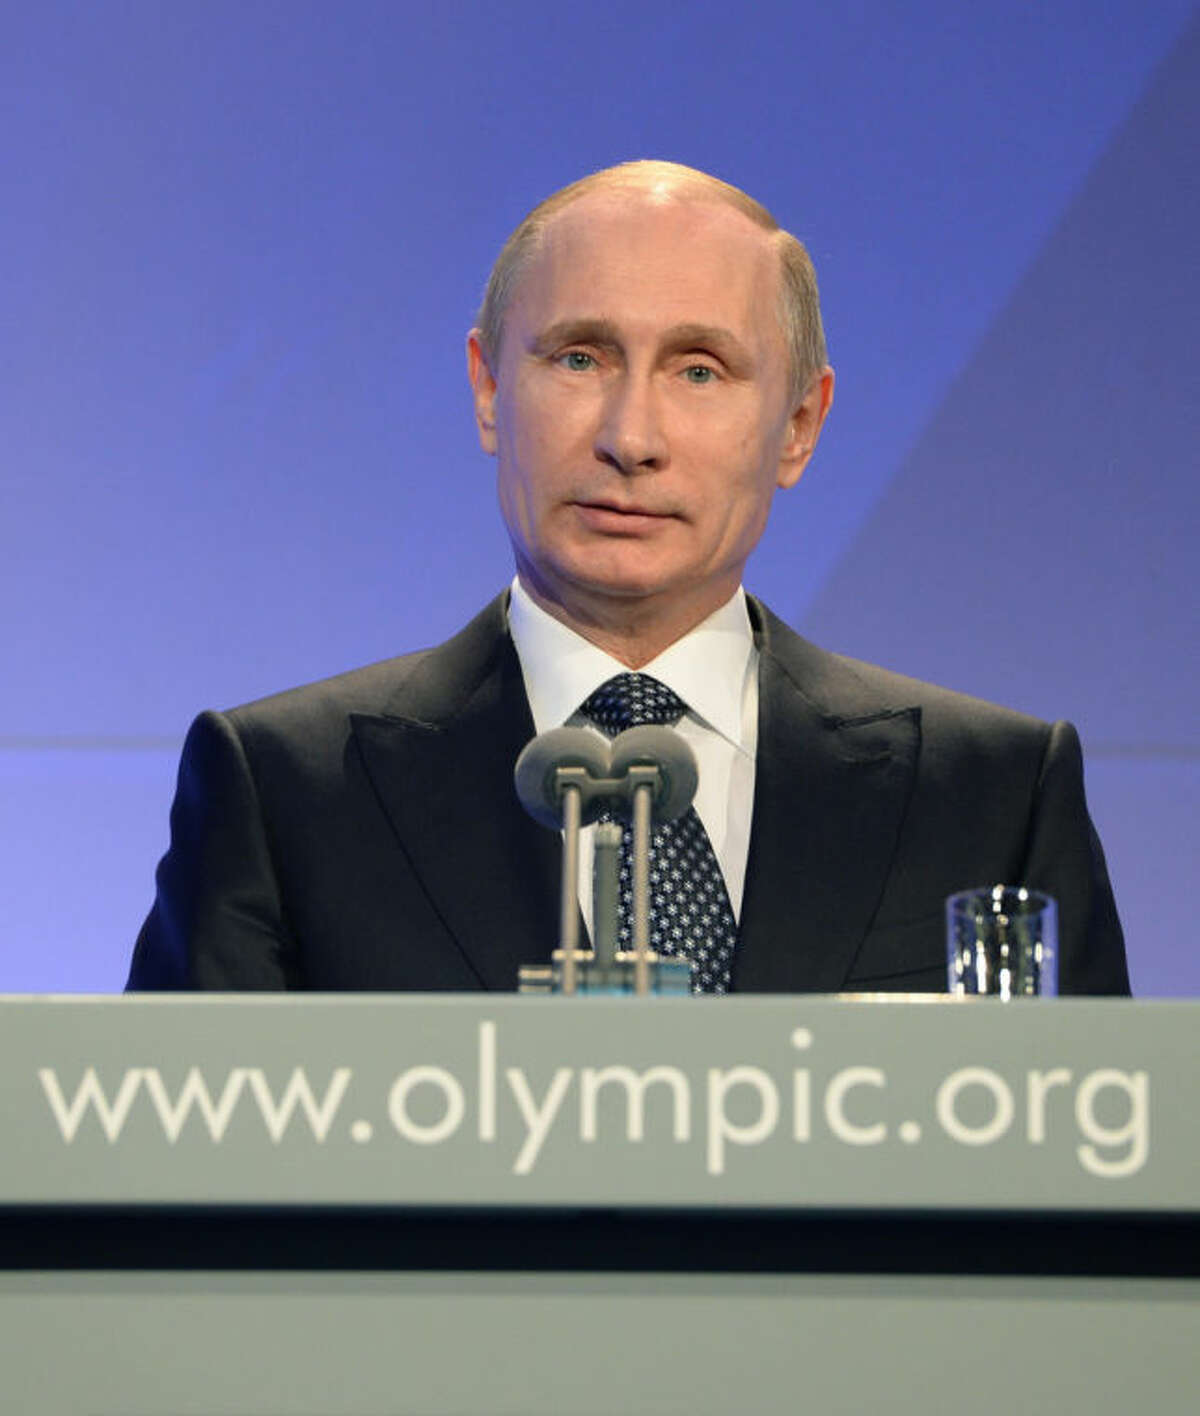 Russian President Vladimir Putin delivers his speech at the IOC President's Gala Dinner on the eve of the opening ceremony of the 2014 Winter Olympics, Thursday, Feb. 6, 2014, in Sochi, Russia. (AP Photo/Andrej Isakovic, Pool)